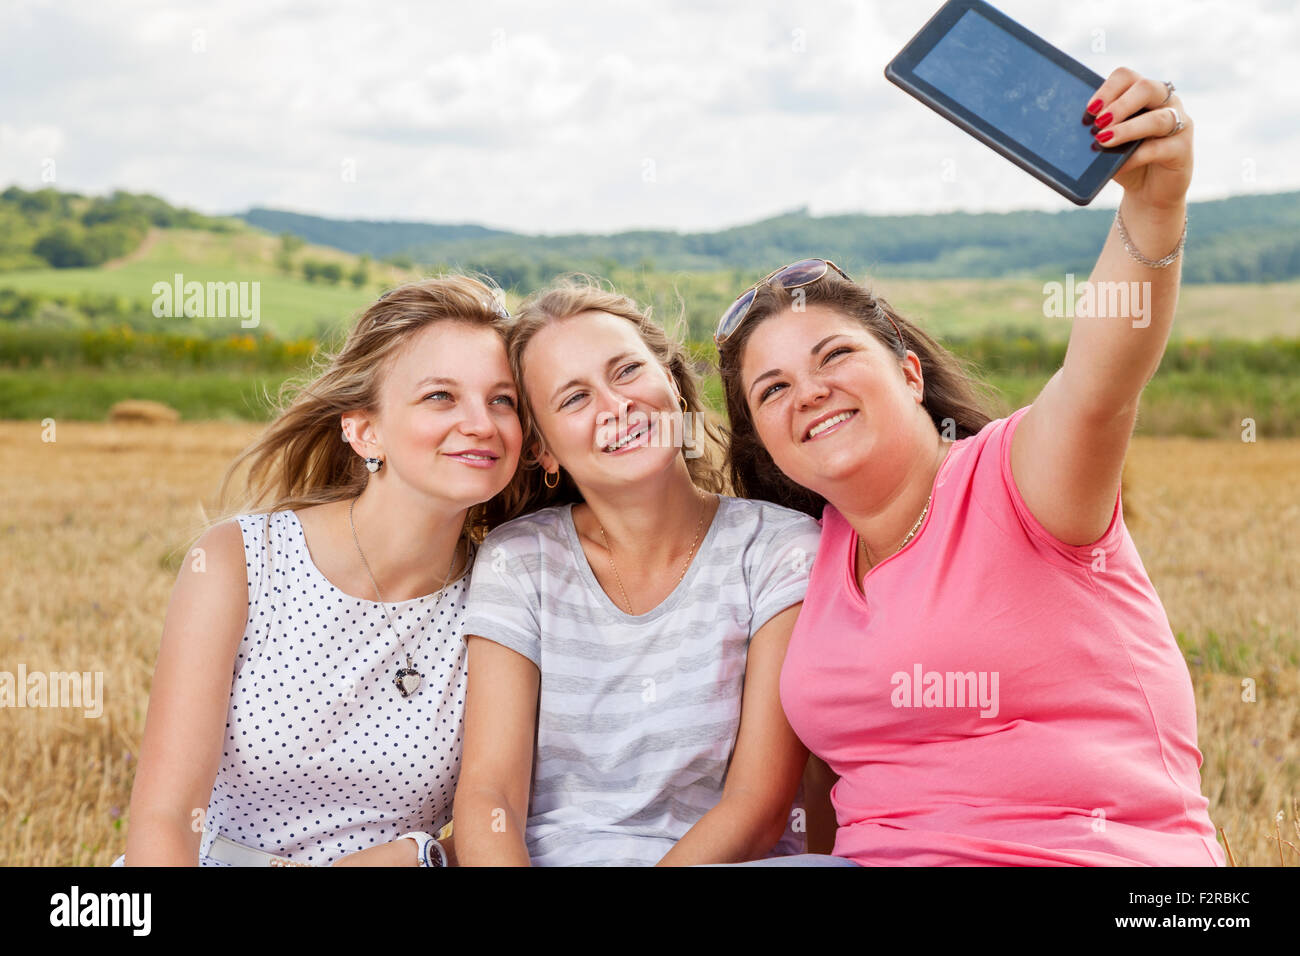 Three Best Friends Taking A Selfie Outdoors Stock Photo 87795216